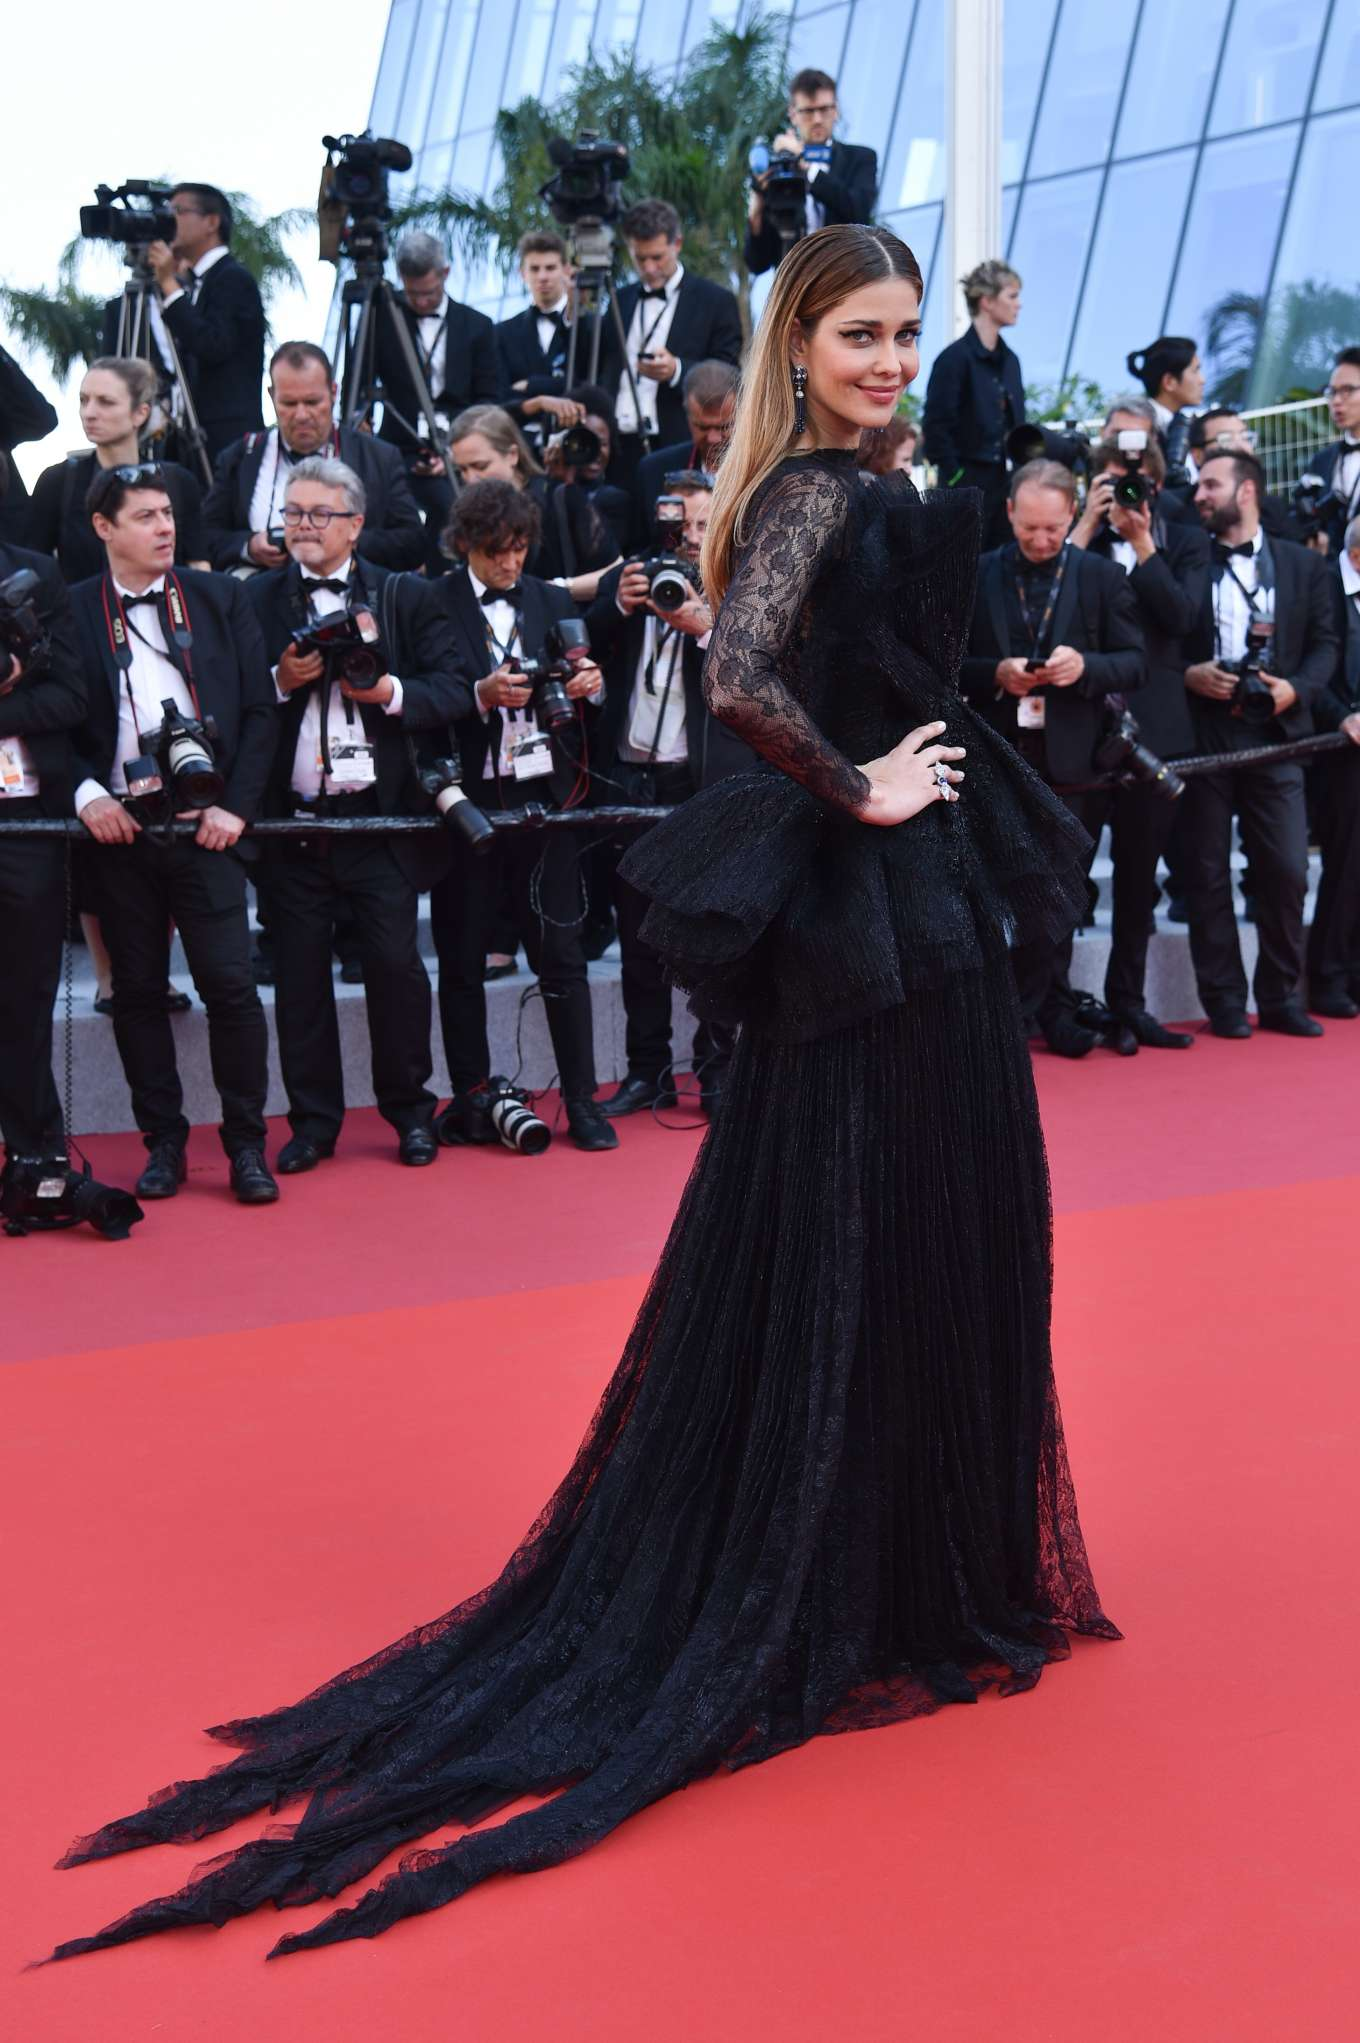 Ana Beatriz Barros 2019 : Ana Beatriz Barros: The Traitor Premiere at 2019 Cannes Film Festival-04